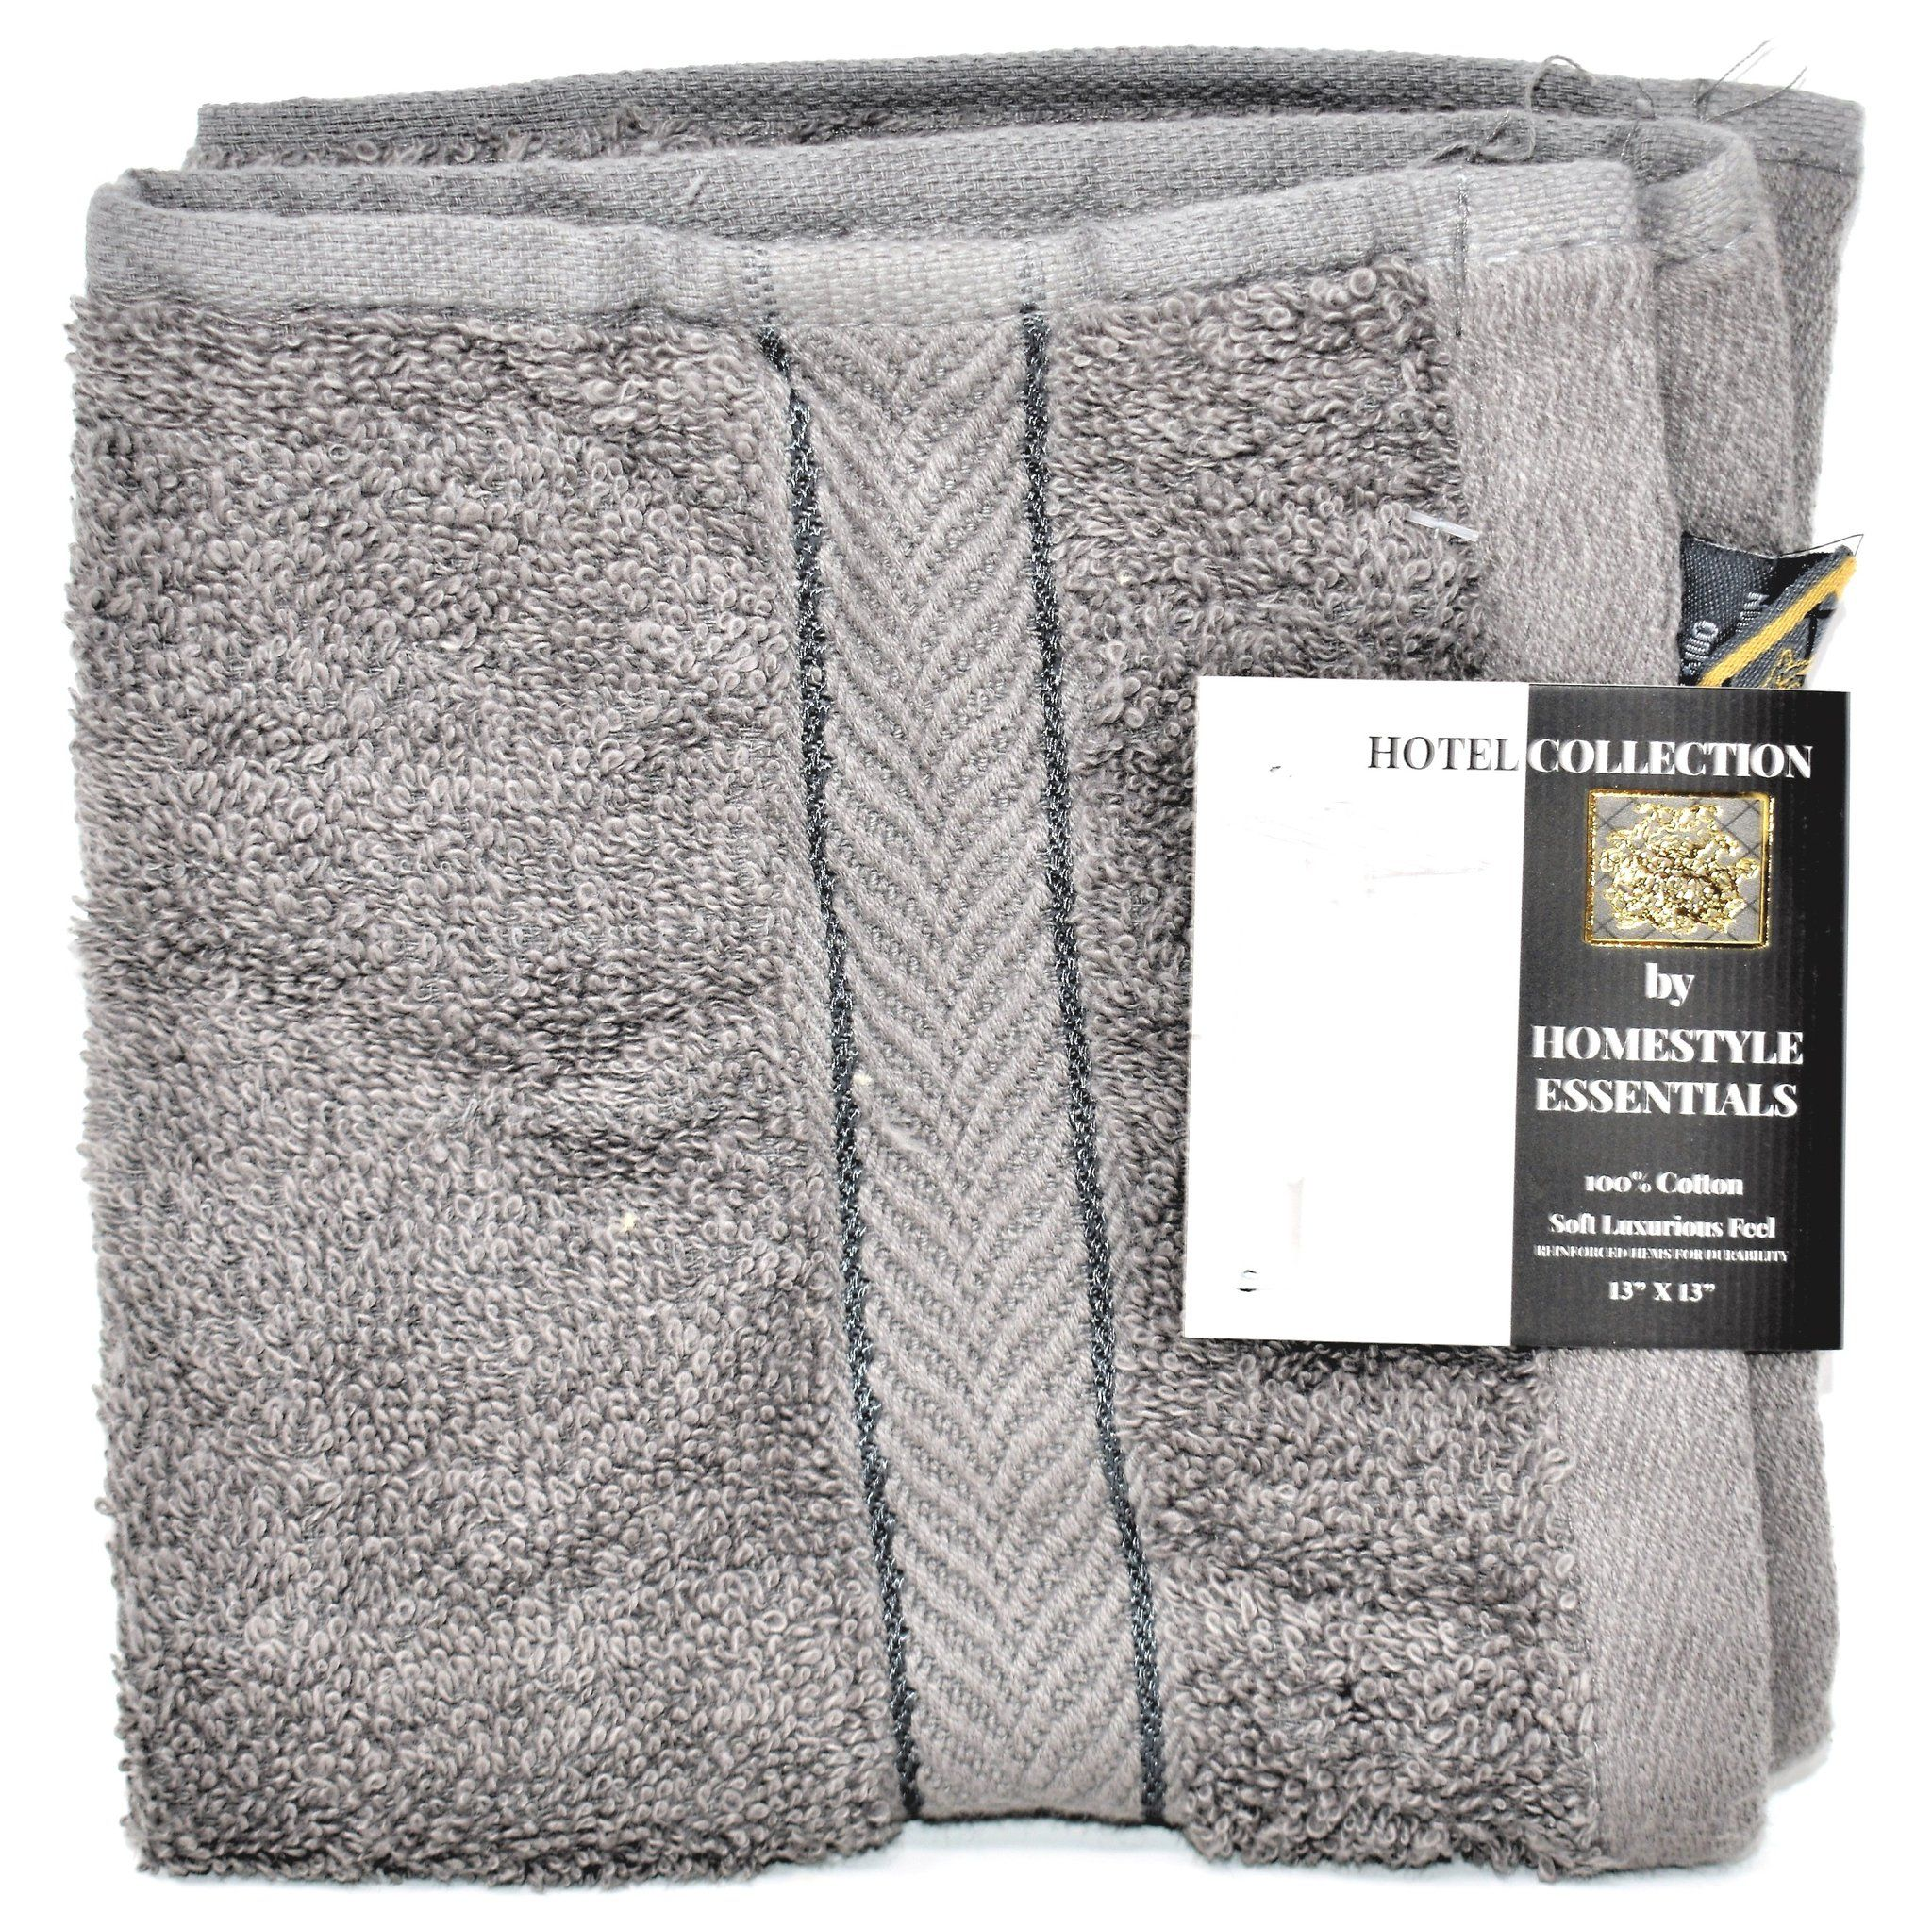 """Hotel Collection by Homestyle Essentials 13/"""" x 13/"""" Wash Cloth Taupe Color"""